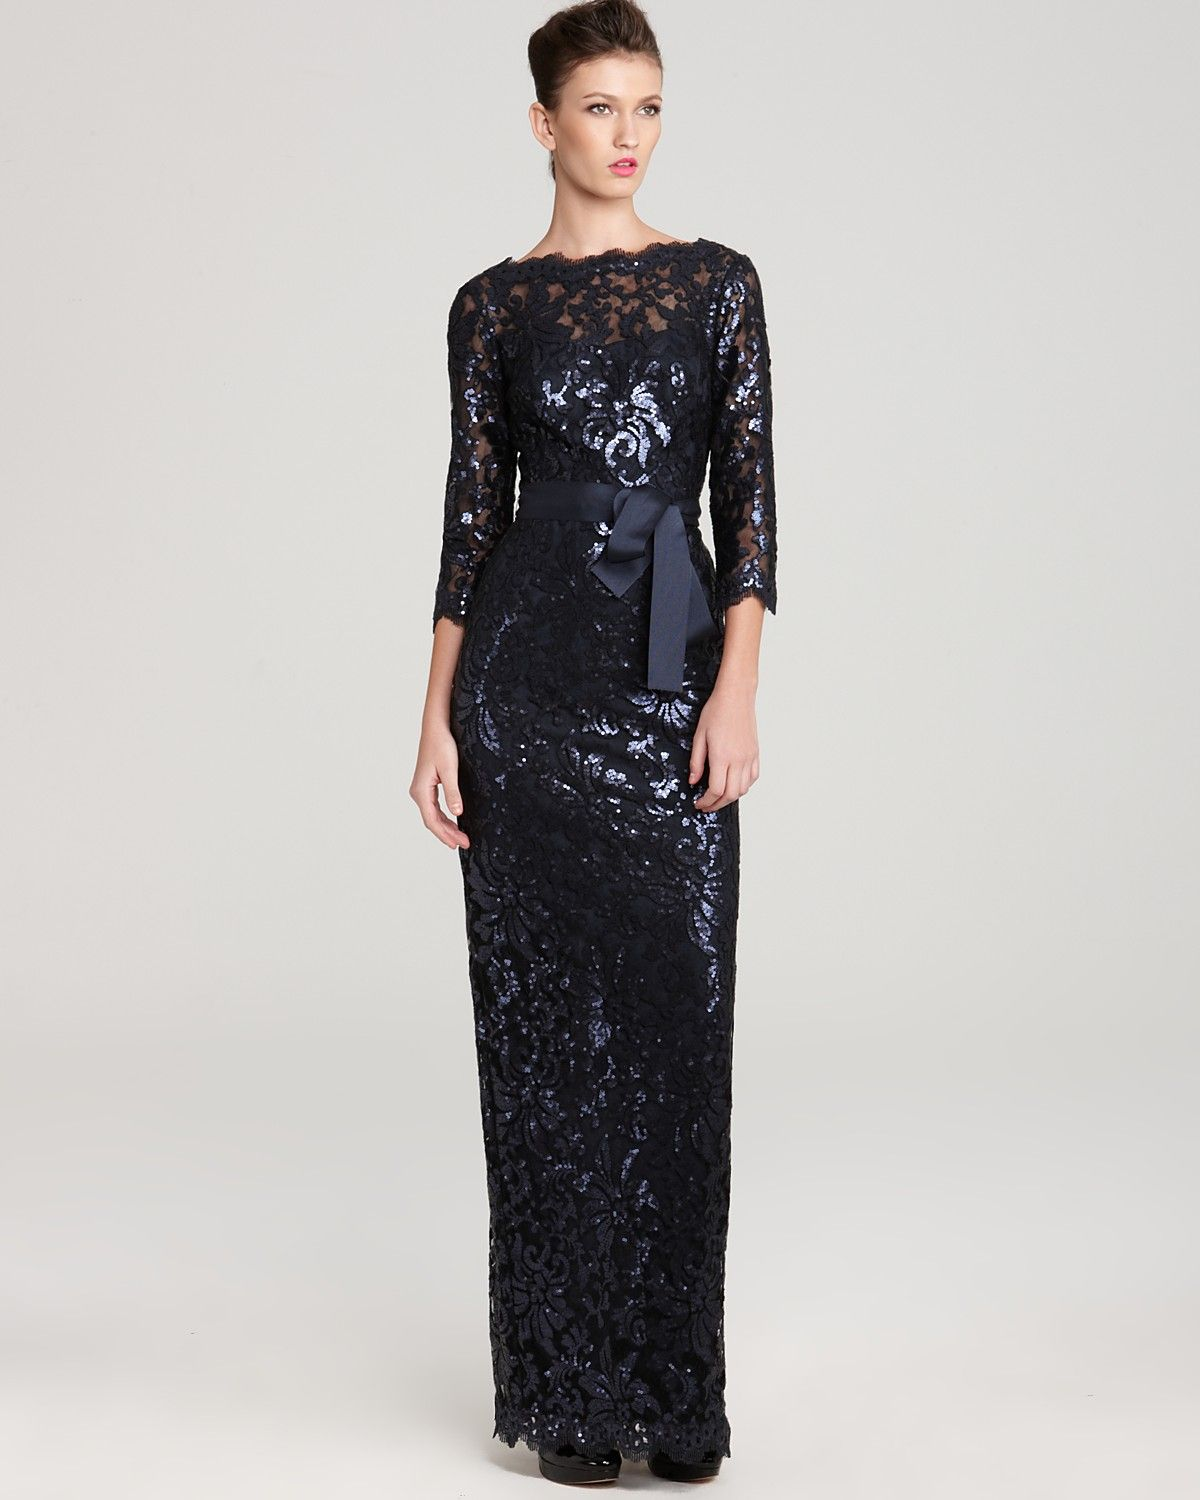 ae34a66bec7 Tadashi Shoji Gown - Long Sleeve Sequin Lace